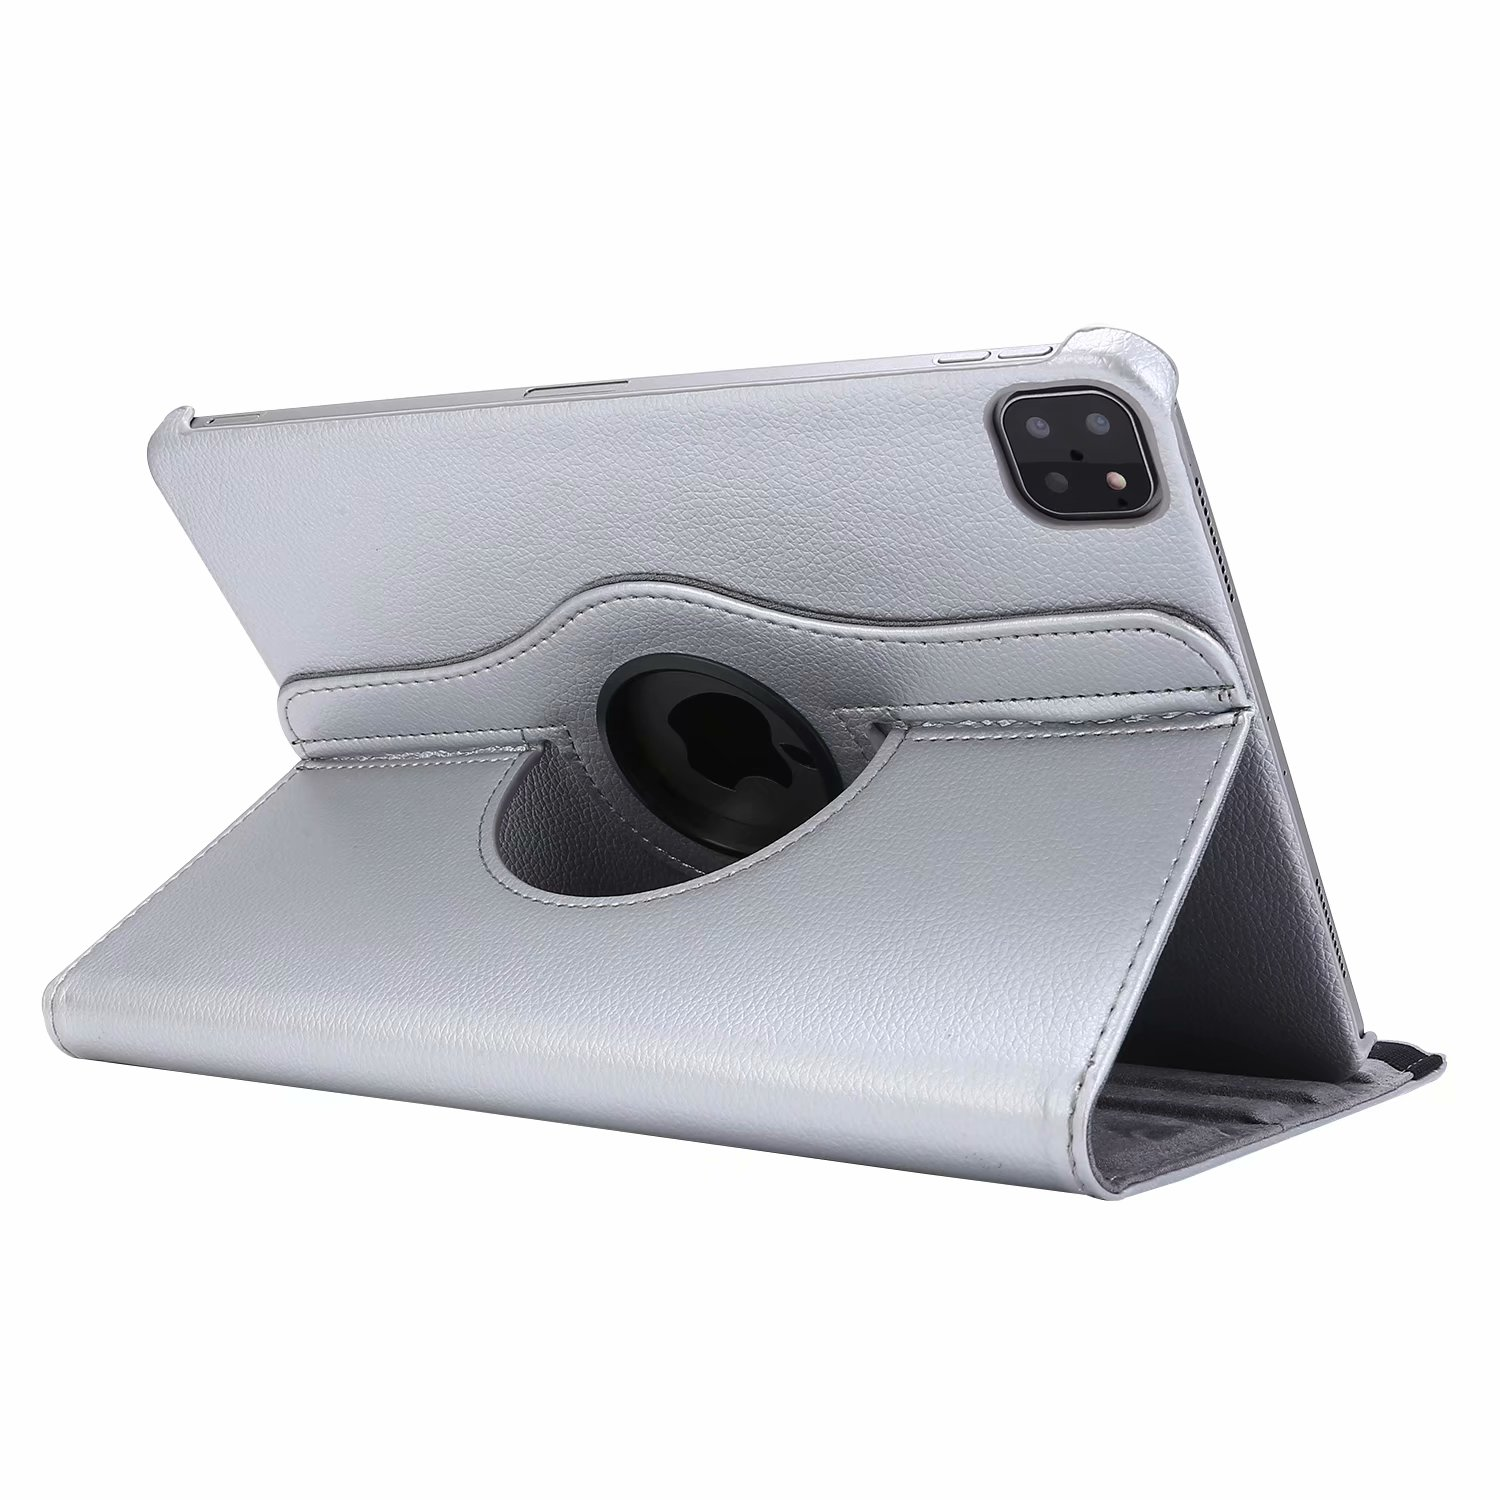 A2230 Pro Case 2021/2020/2018 A1934 A2013 iPad A2068 A1980 360 11 Cover for Degree A2228